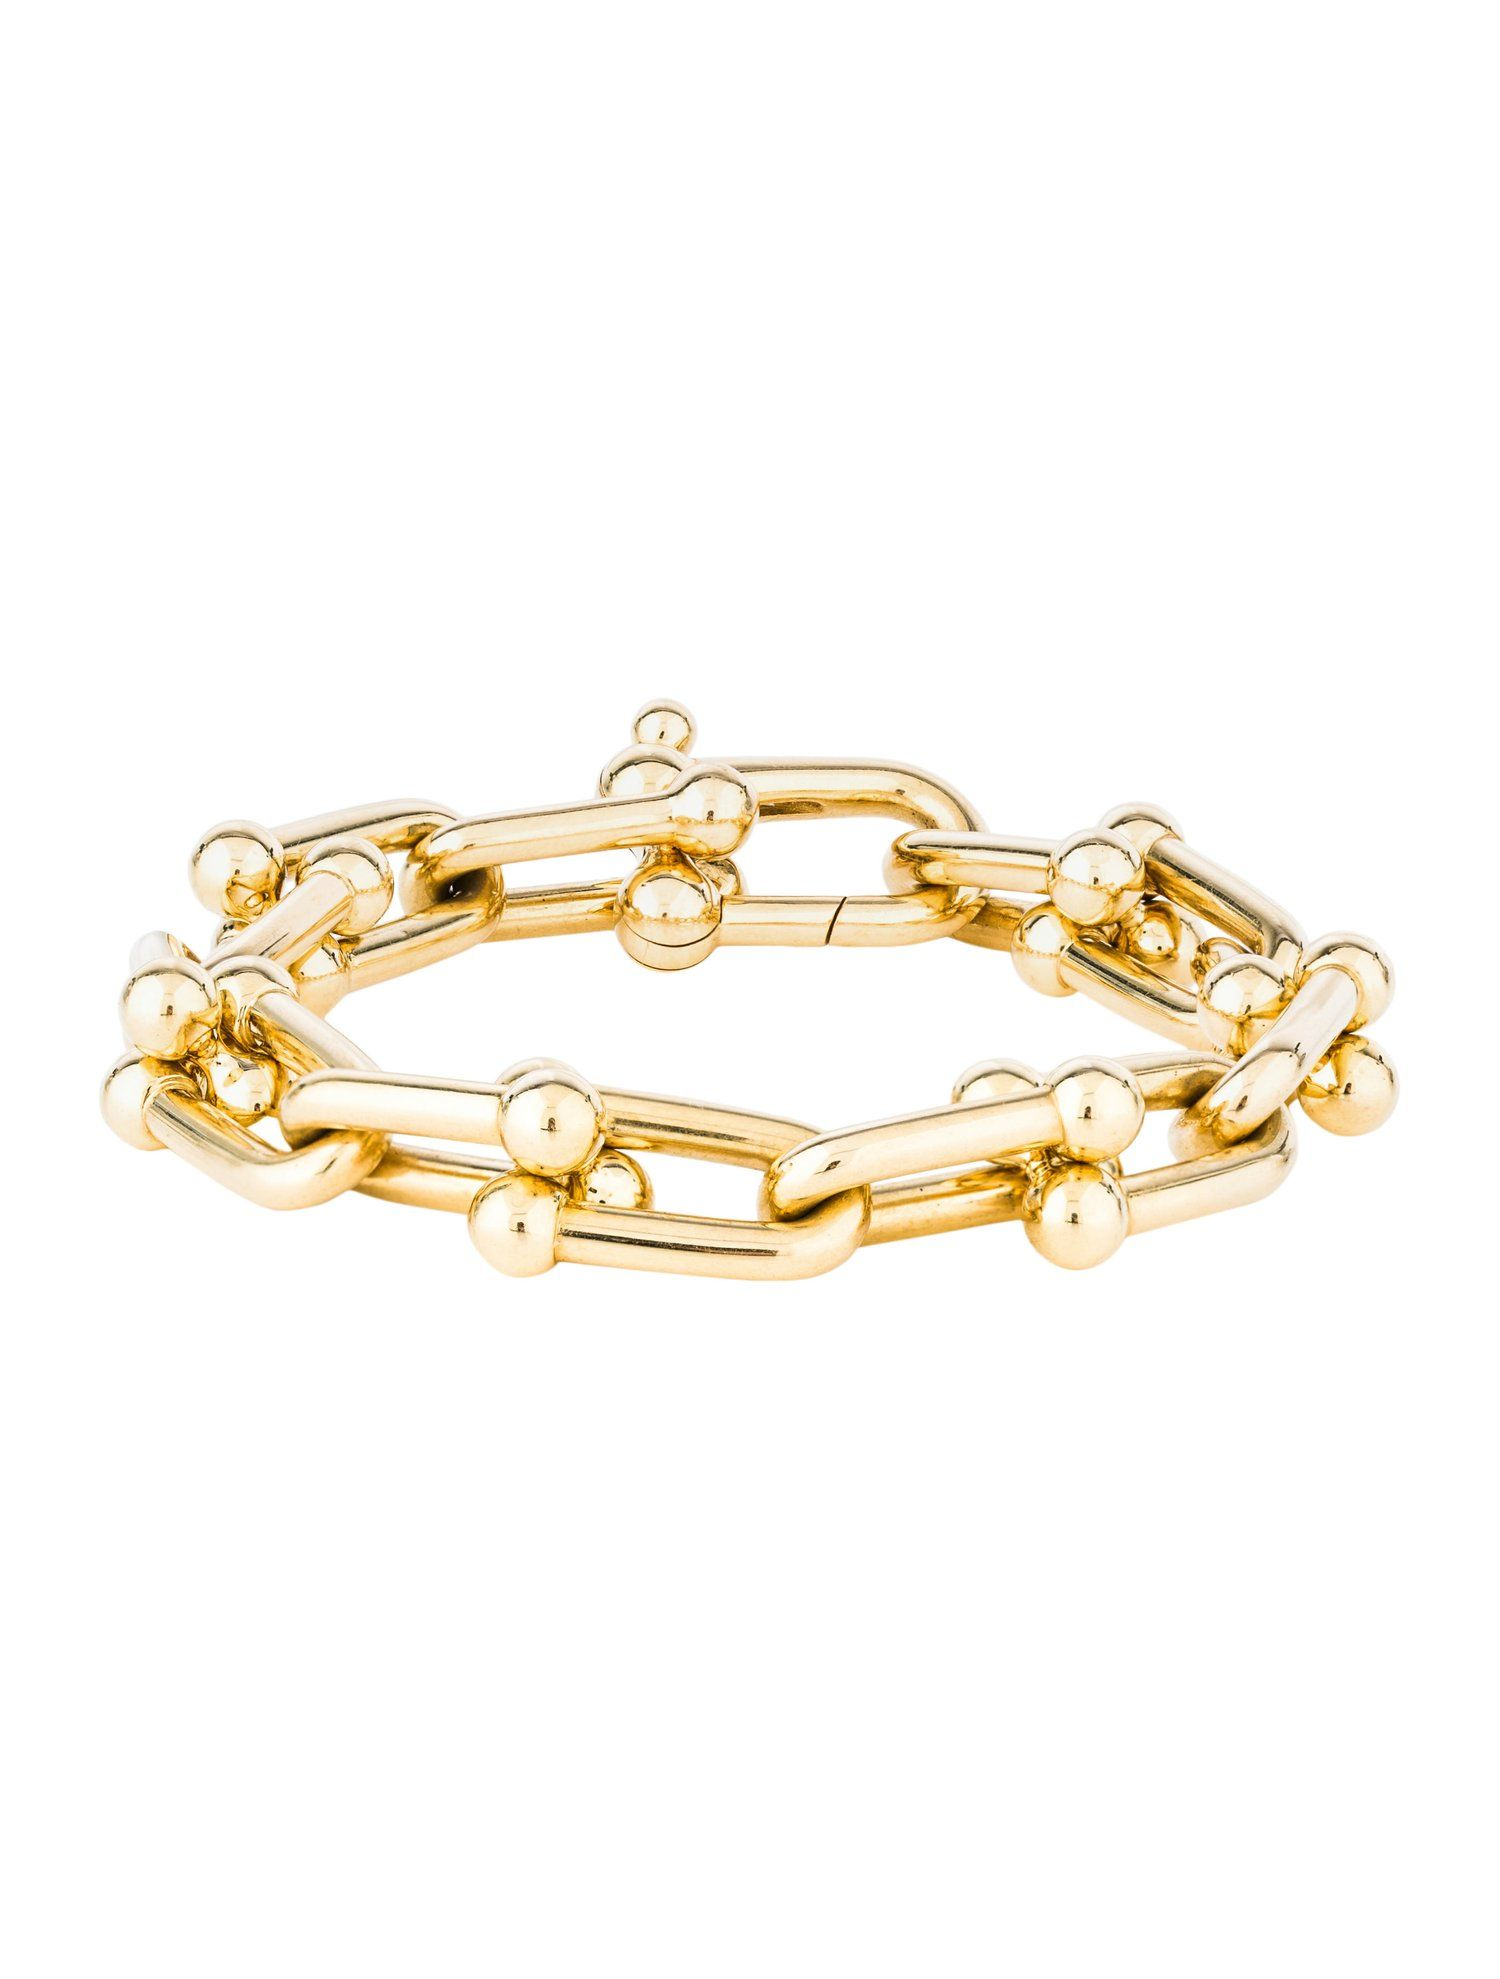 17+ Is tiffany jewelry real gold ideas